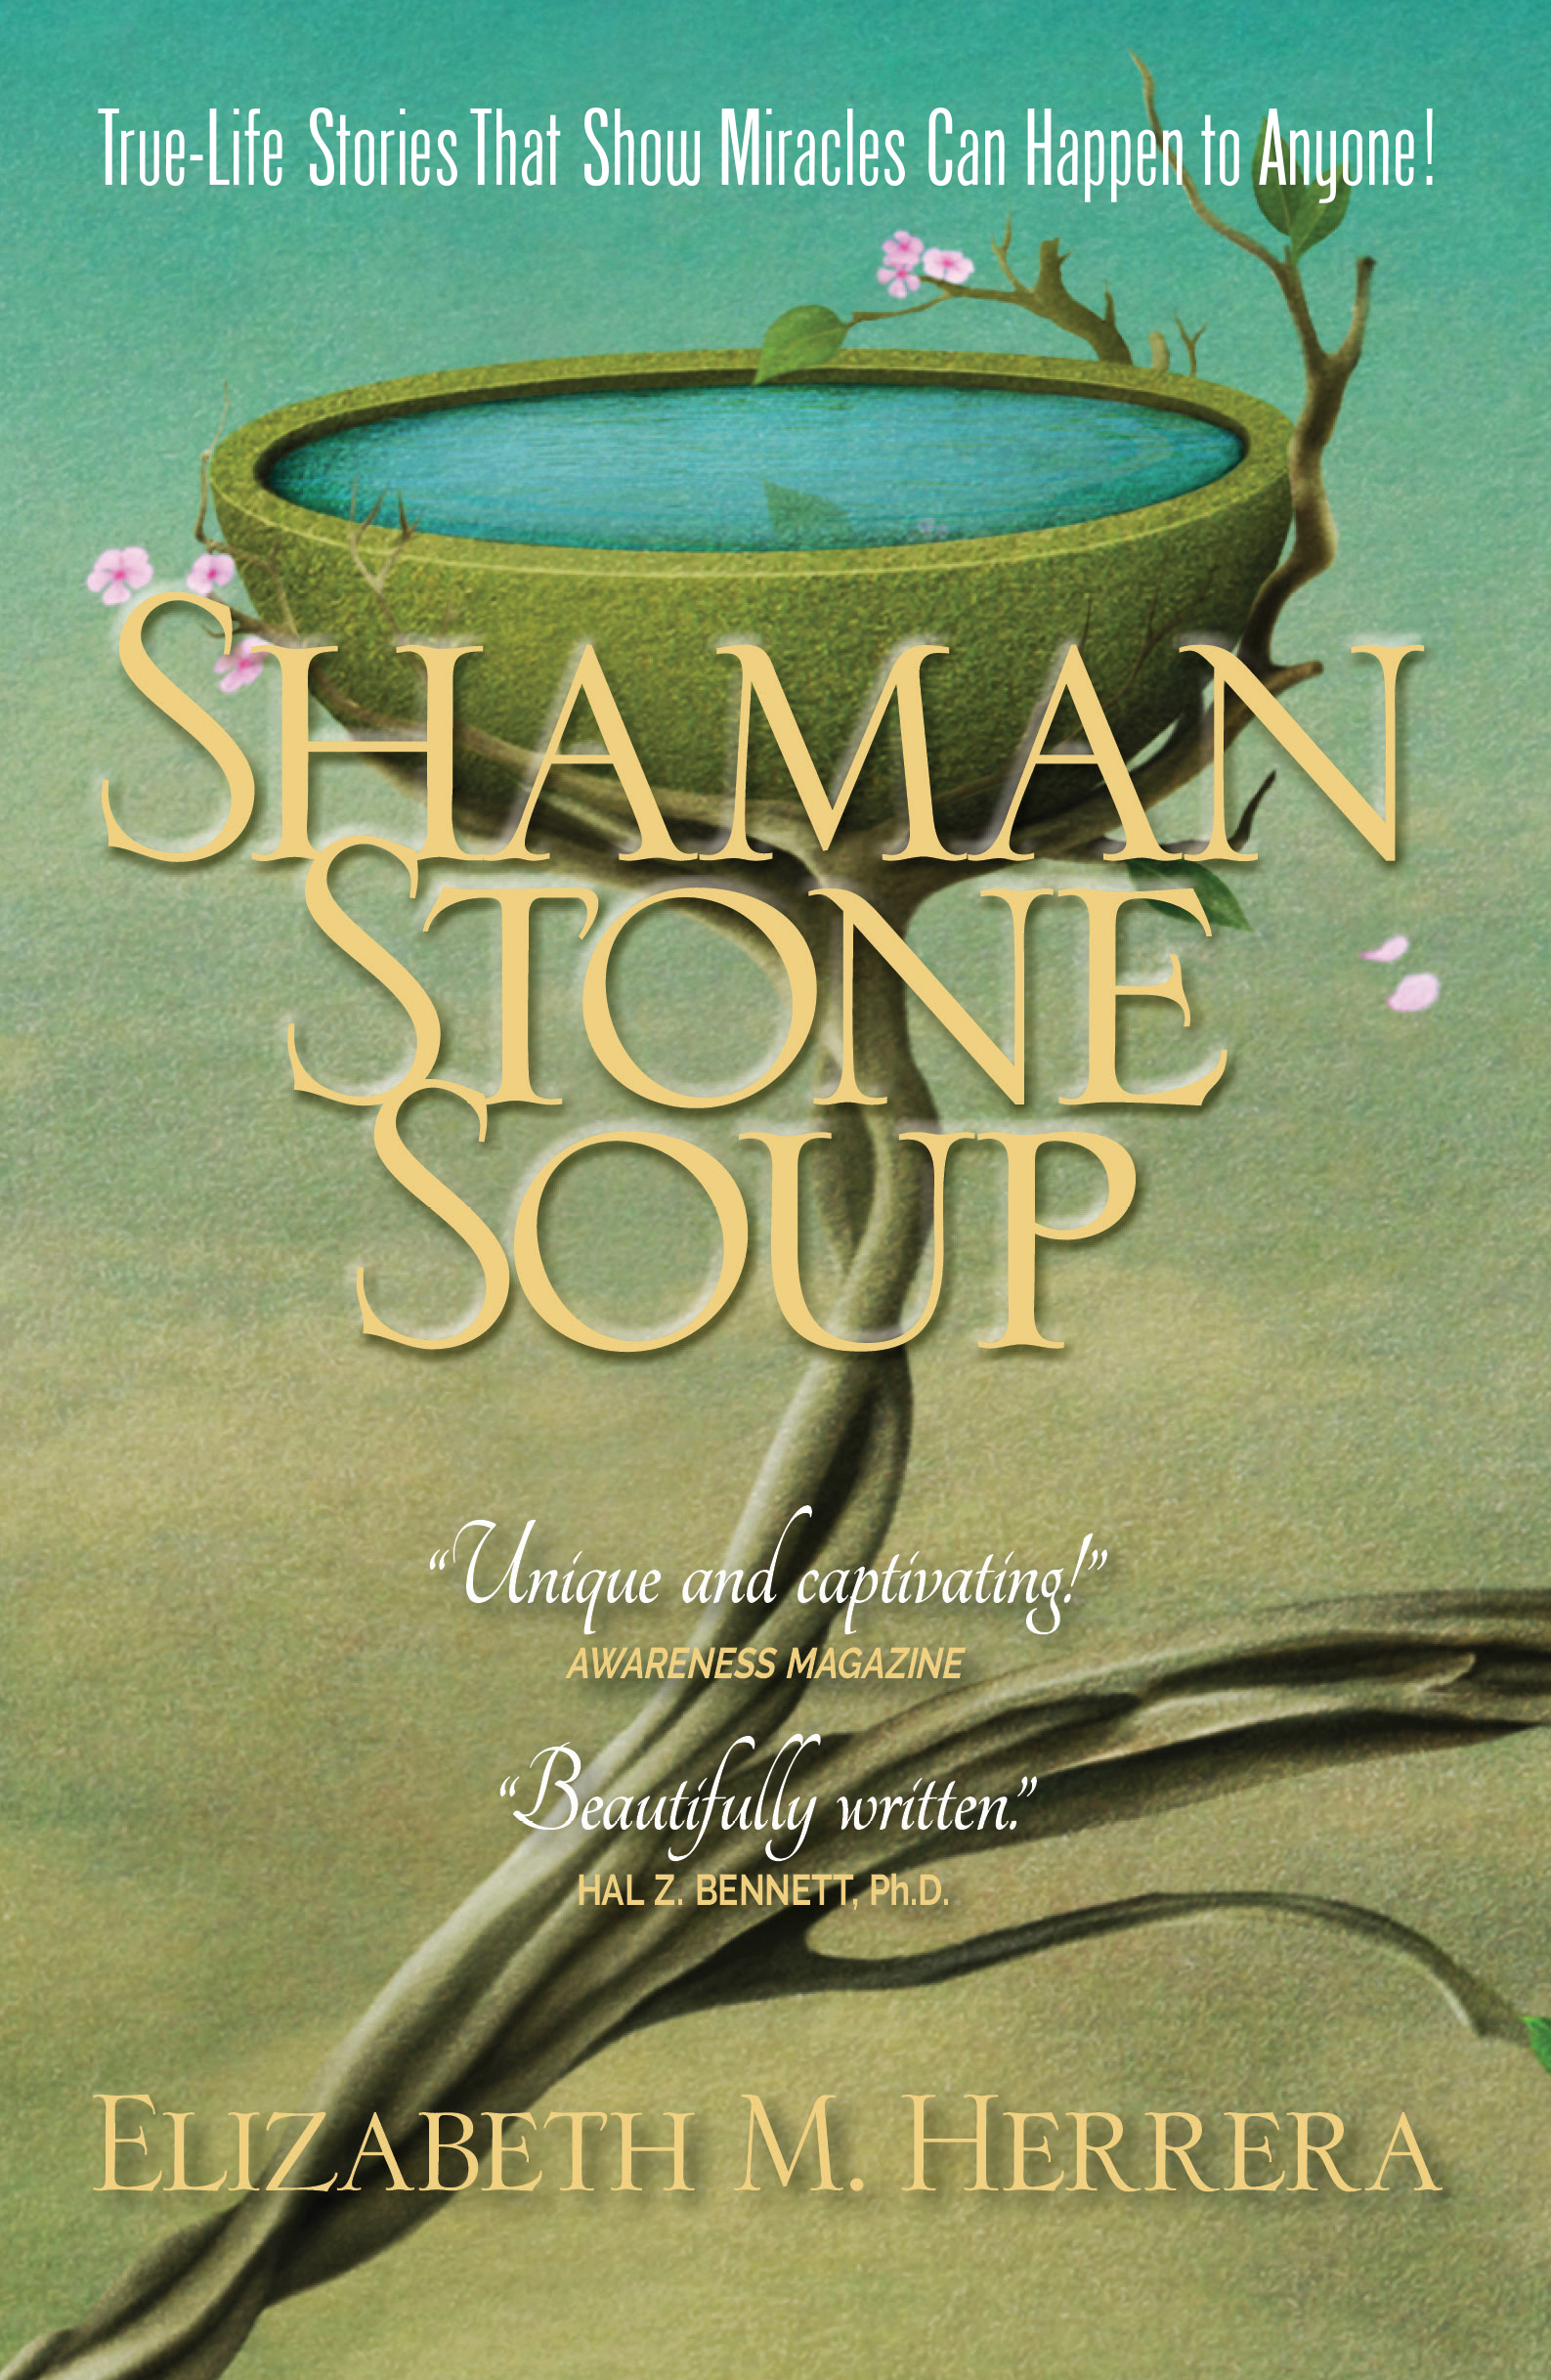 Shaman Stone Soup Cover-2017.indd